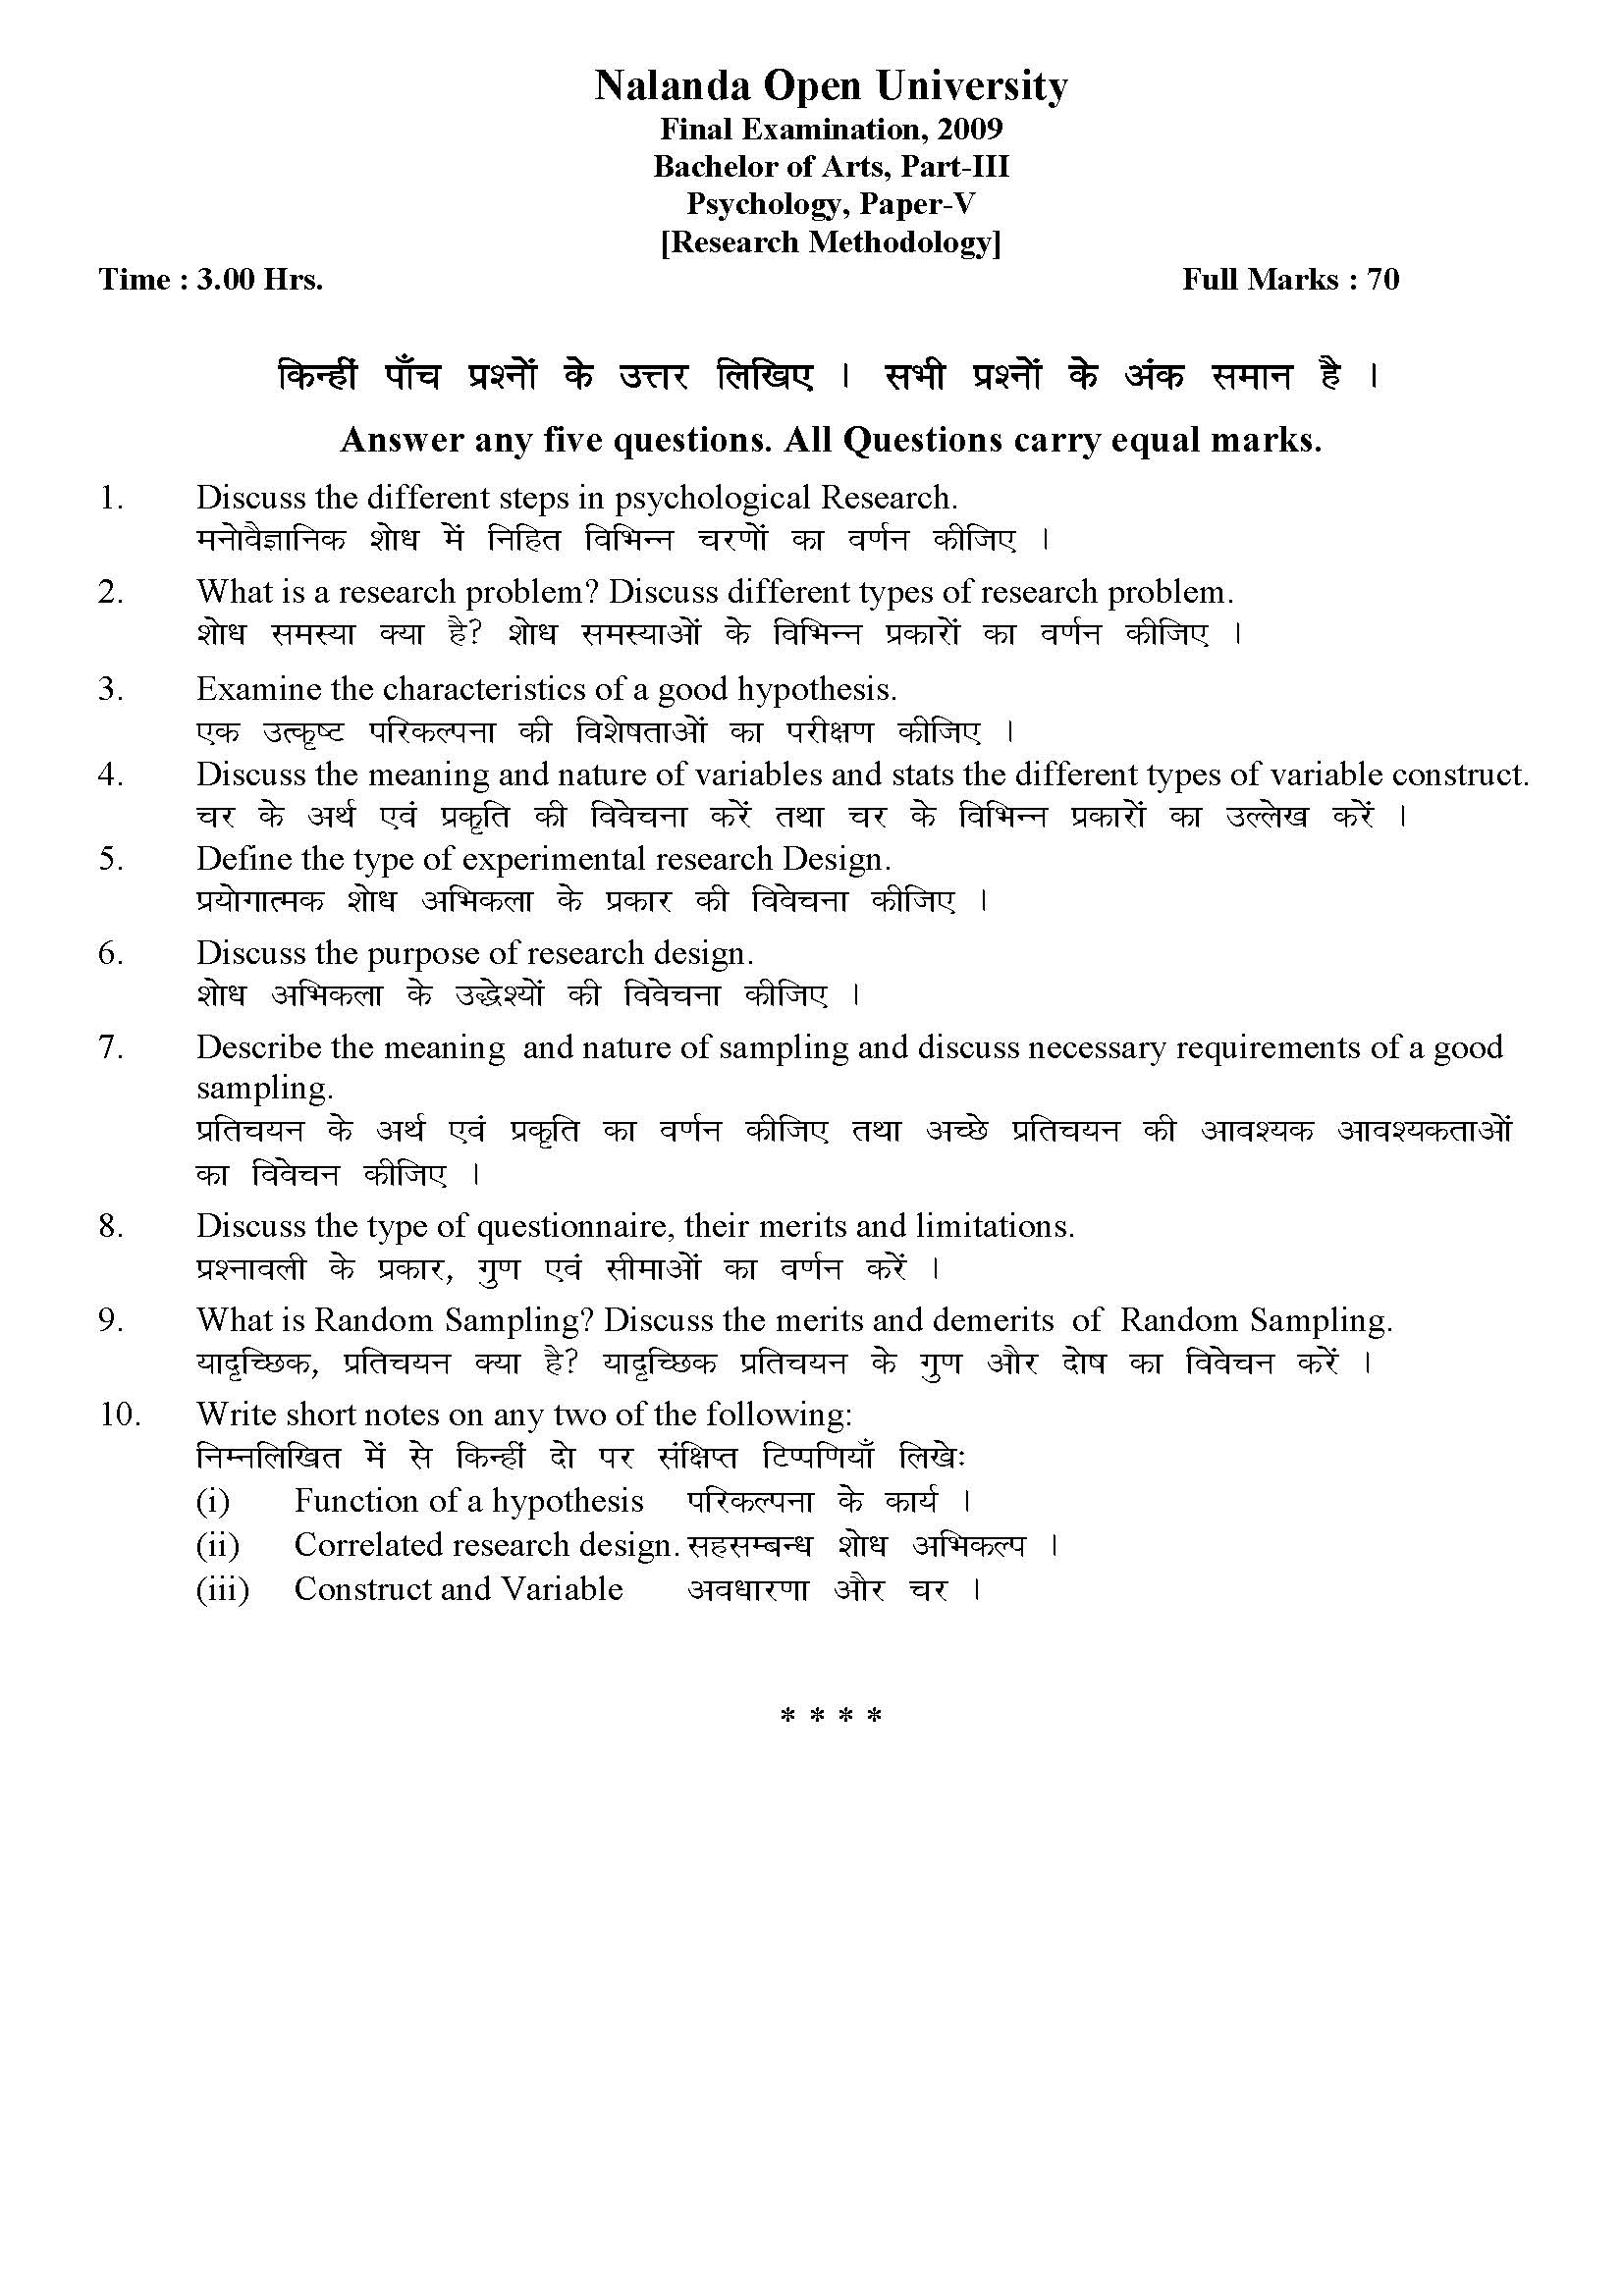 002 Research Paper Methodology Pdf Psychology Part Iii Dreaded Question For Phd Example Sample Full